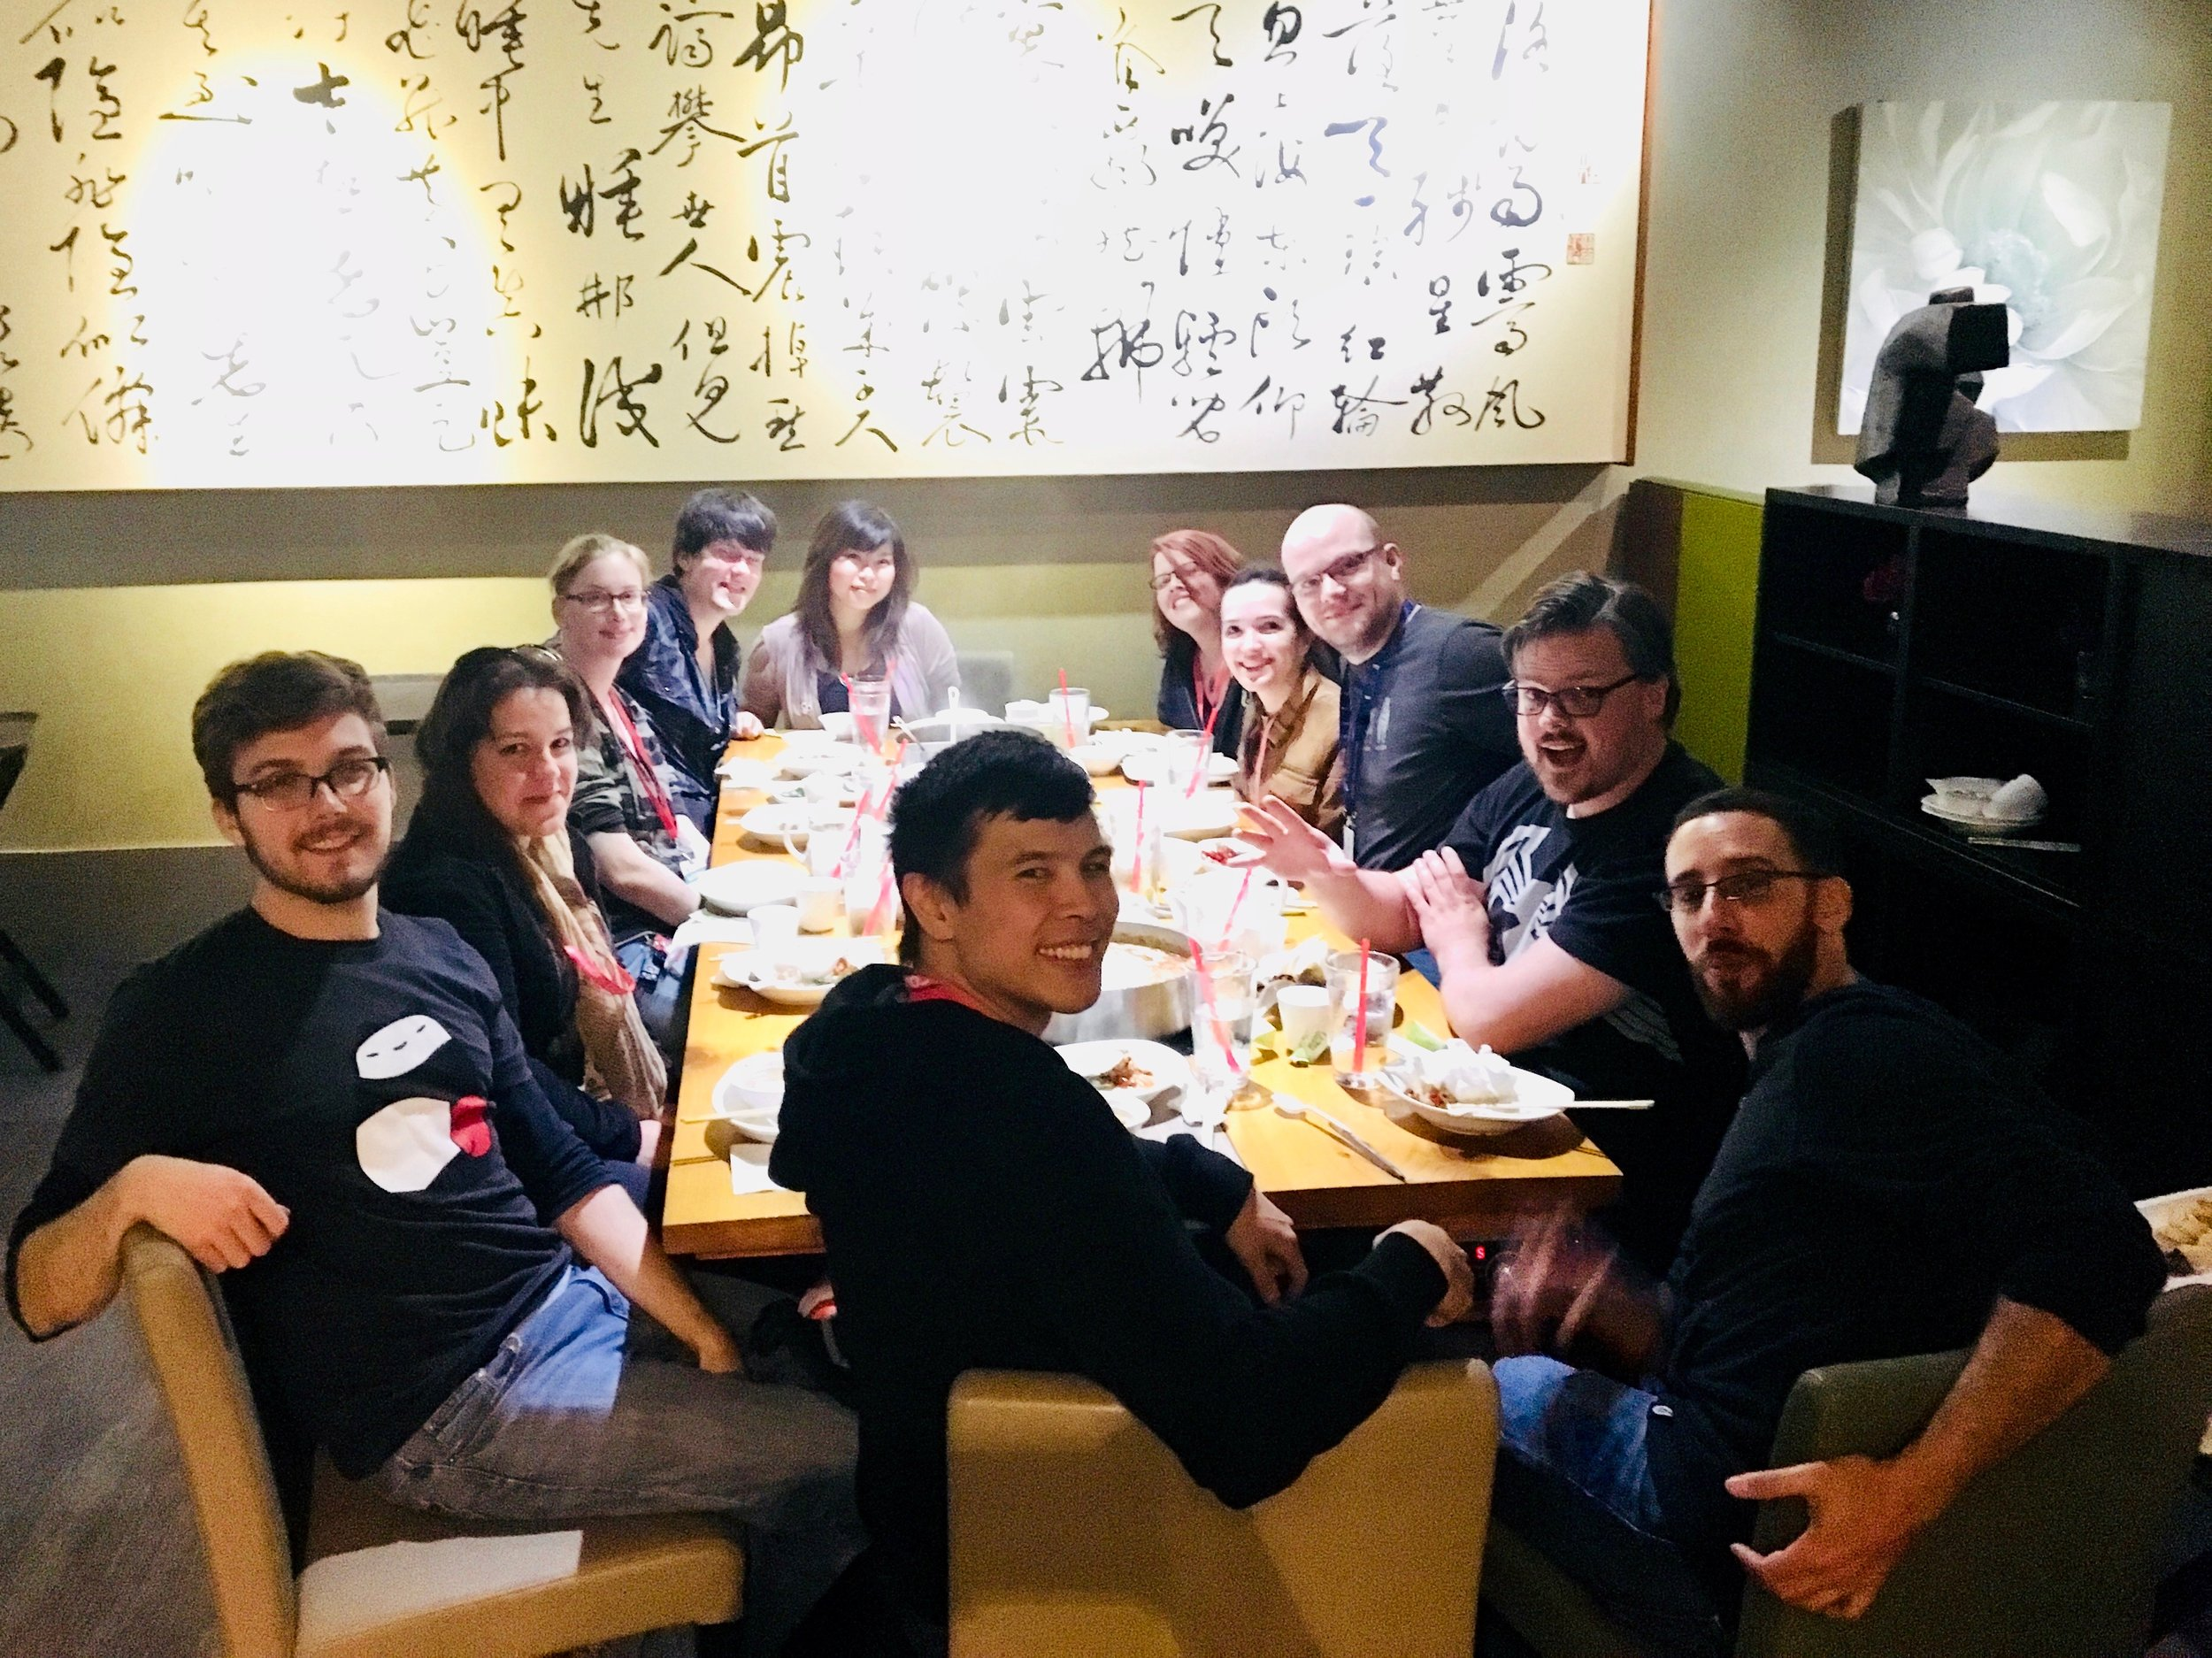 Post-convention hotpot crew (1/2)